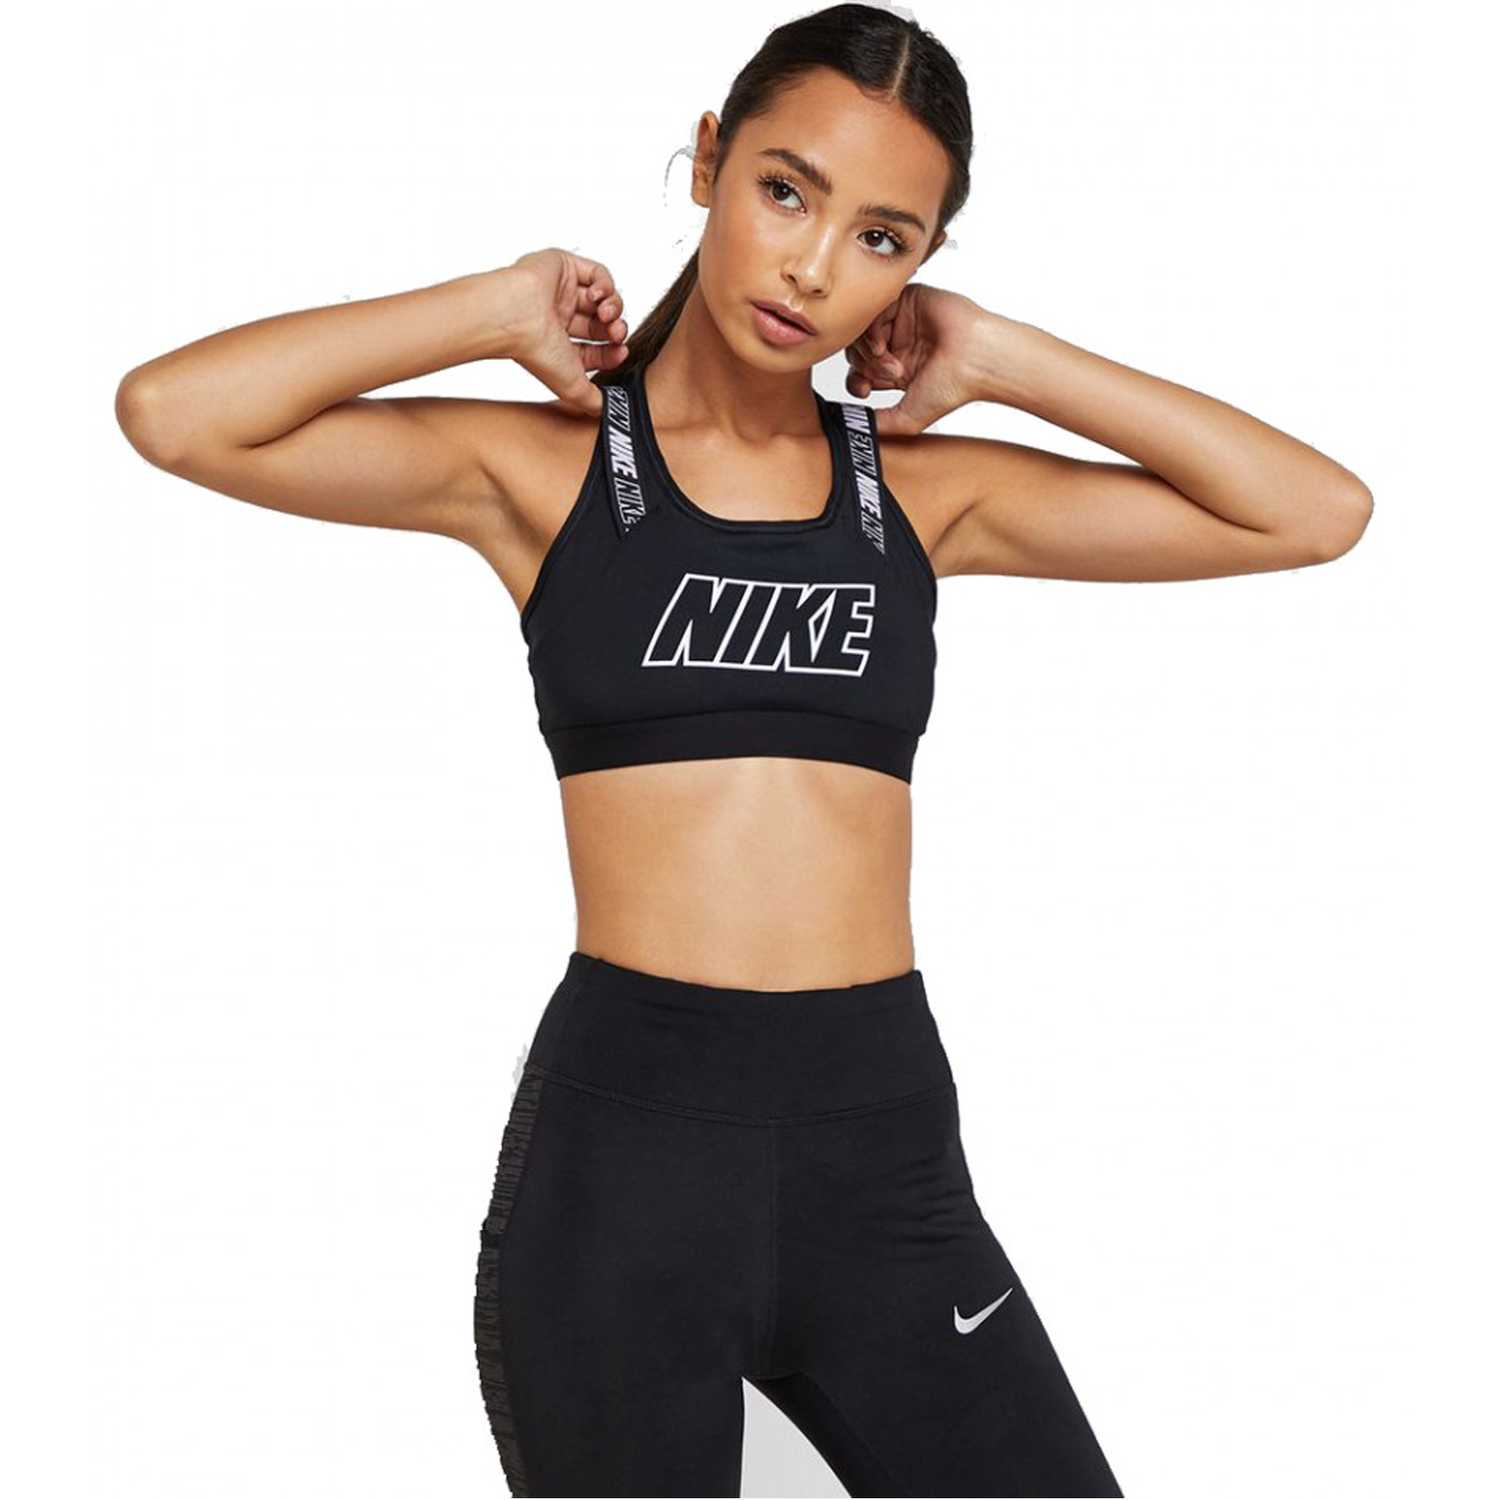 Top de Mujer Nike Negro / blanco nike vcty comp hbr bra